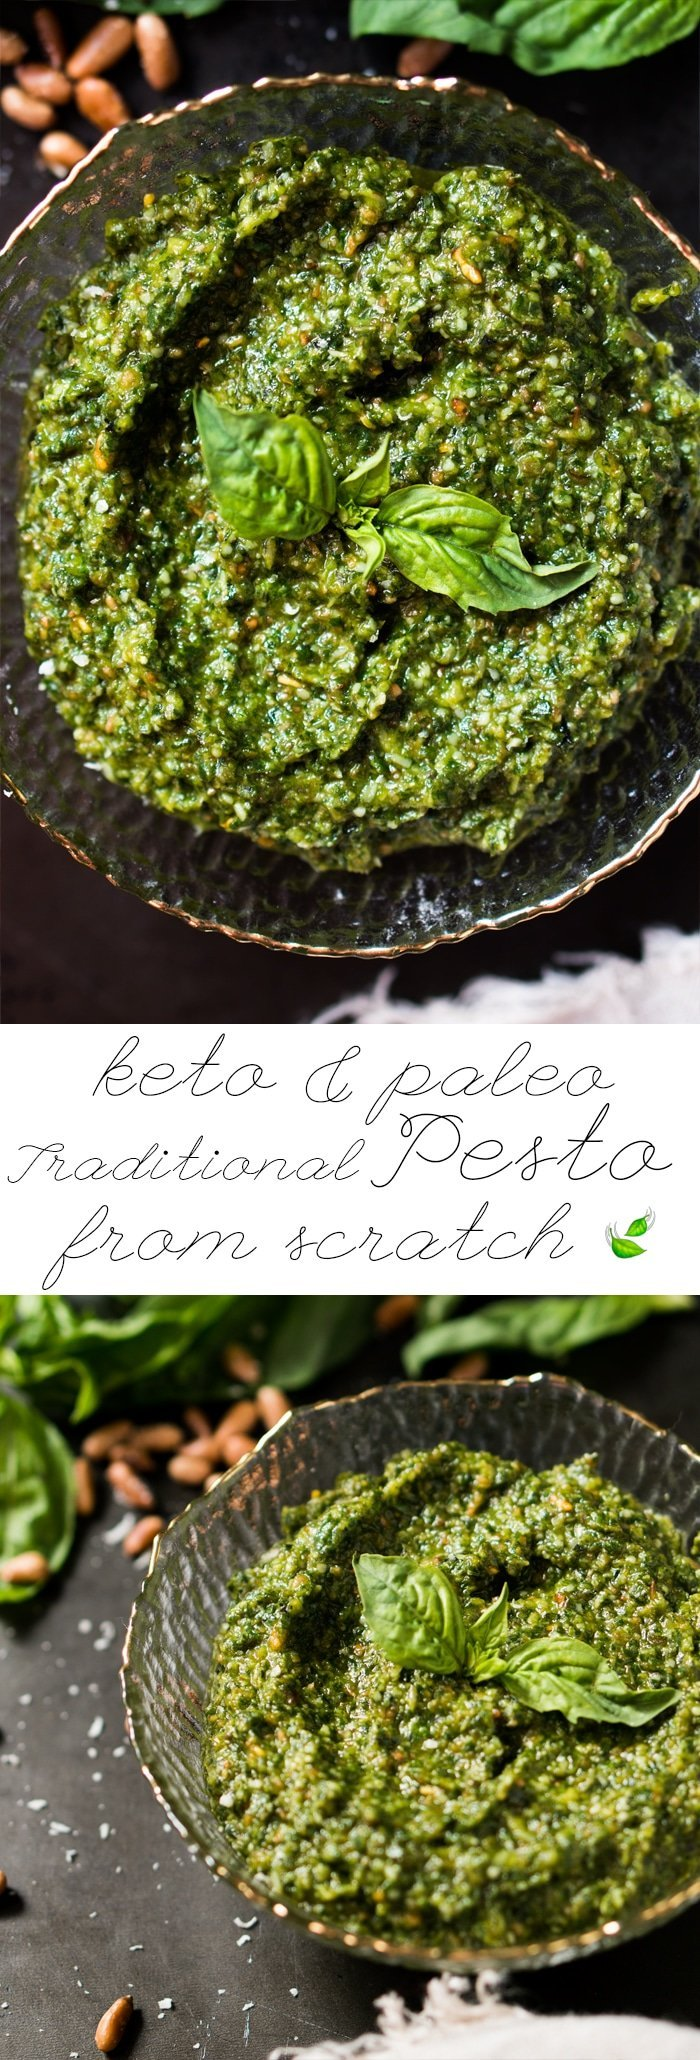 Paleo, Low Carb & Keto Pesto 🍃 A traditional Italian recipe from scratch! #keto #ketodiet #lowcarb #paleo #ketorecipes